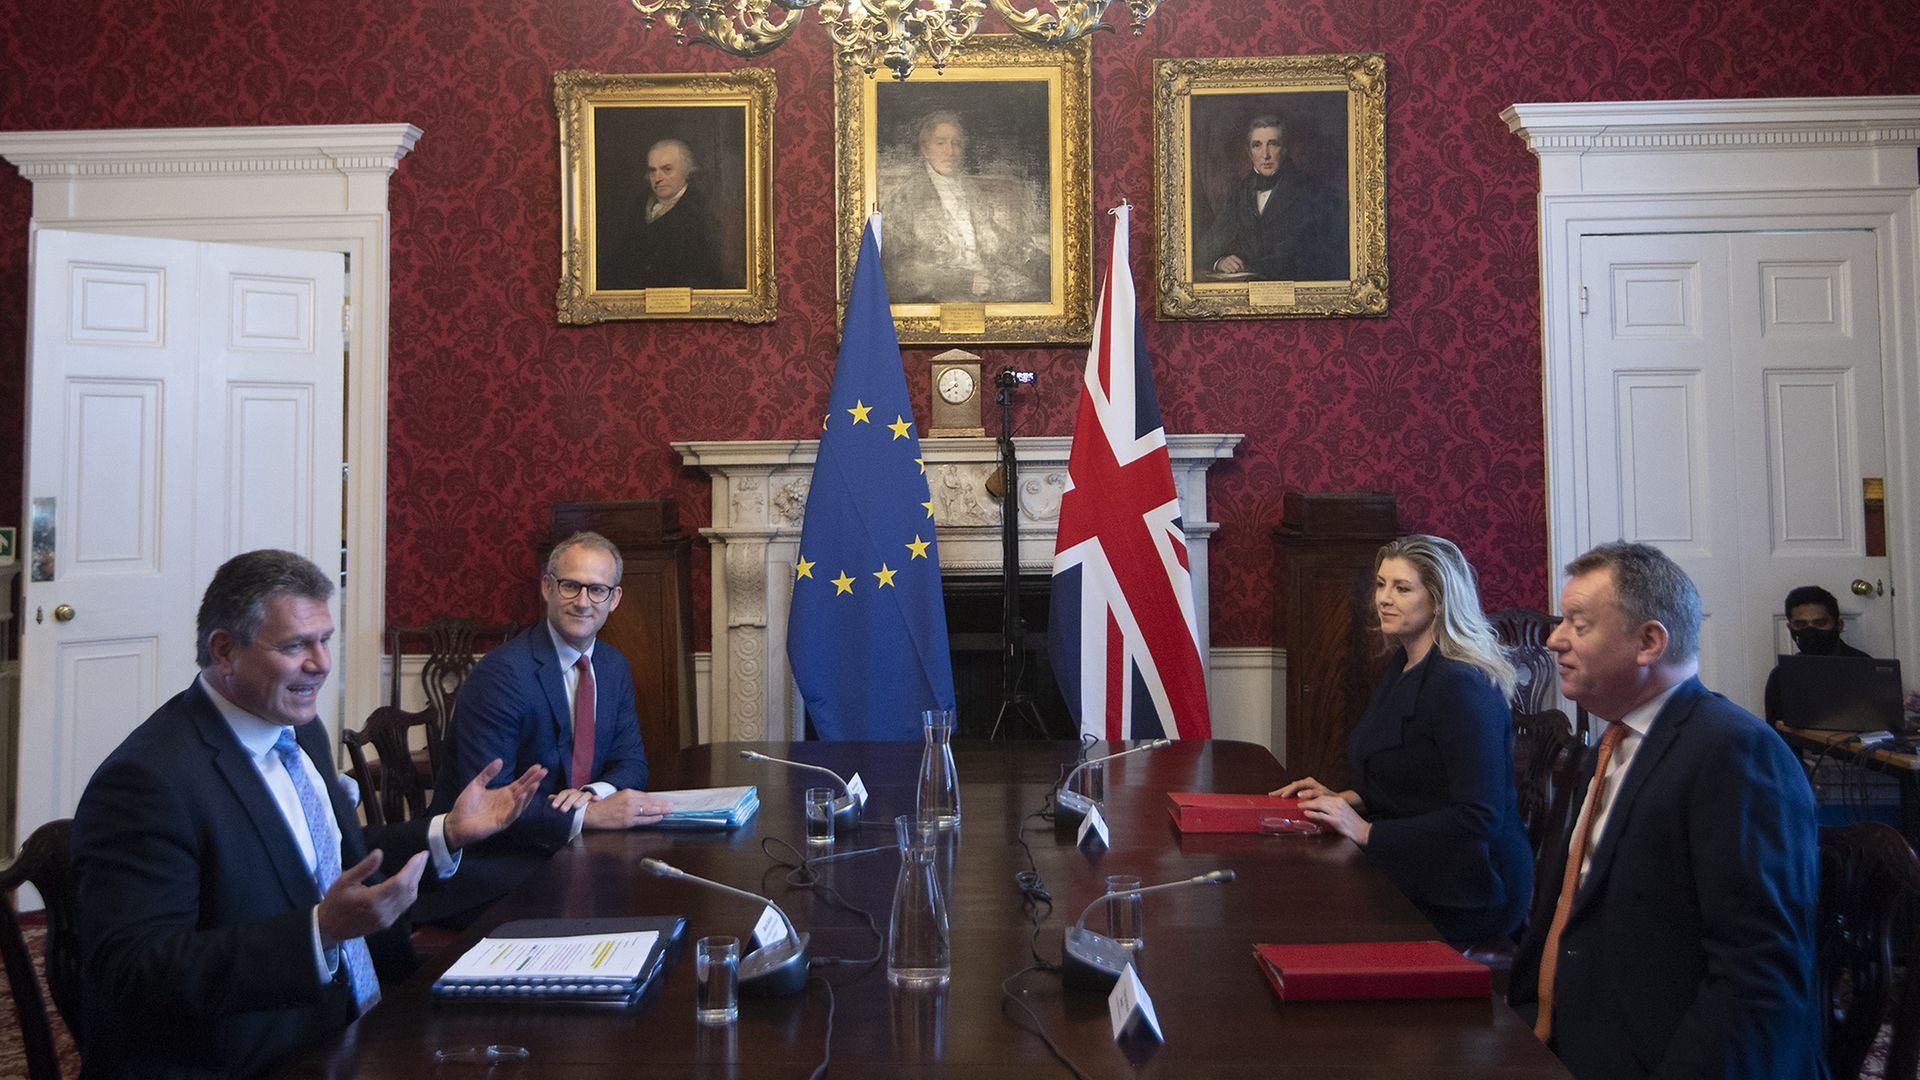 Brexit minister Lord Frost and Penny Mordaunt sitting opposite European Commission vice president Maros Sefcovic and Richard Szostak - Credit: PA